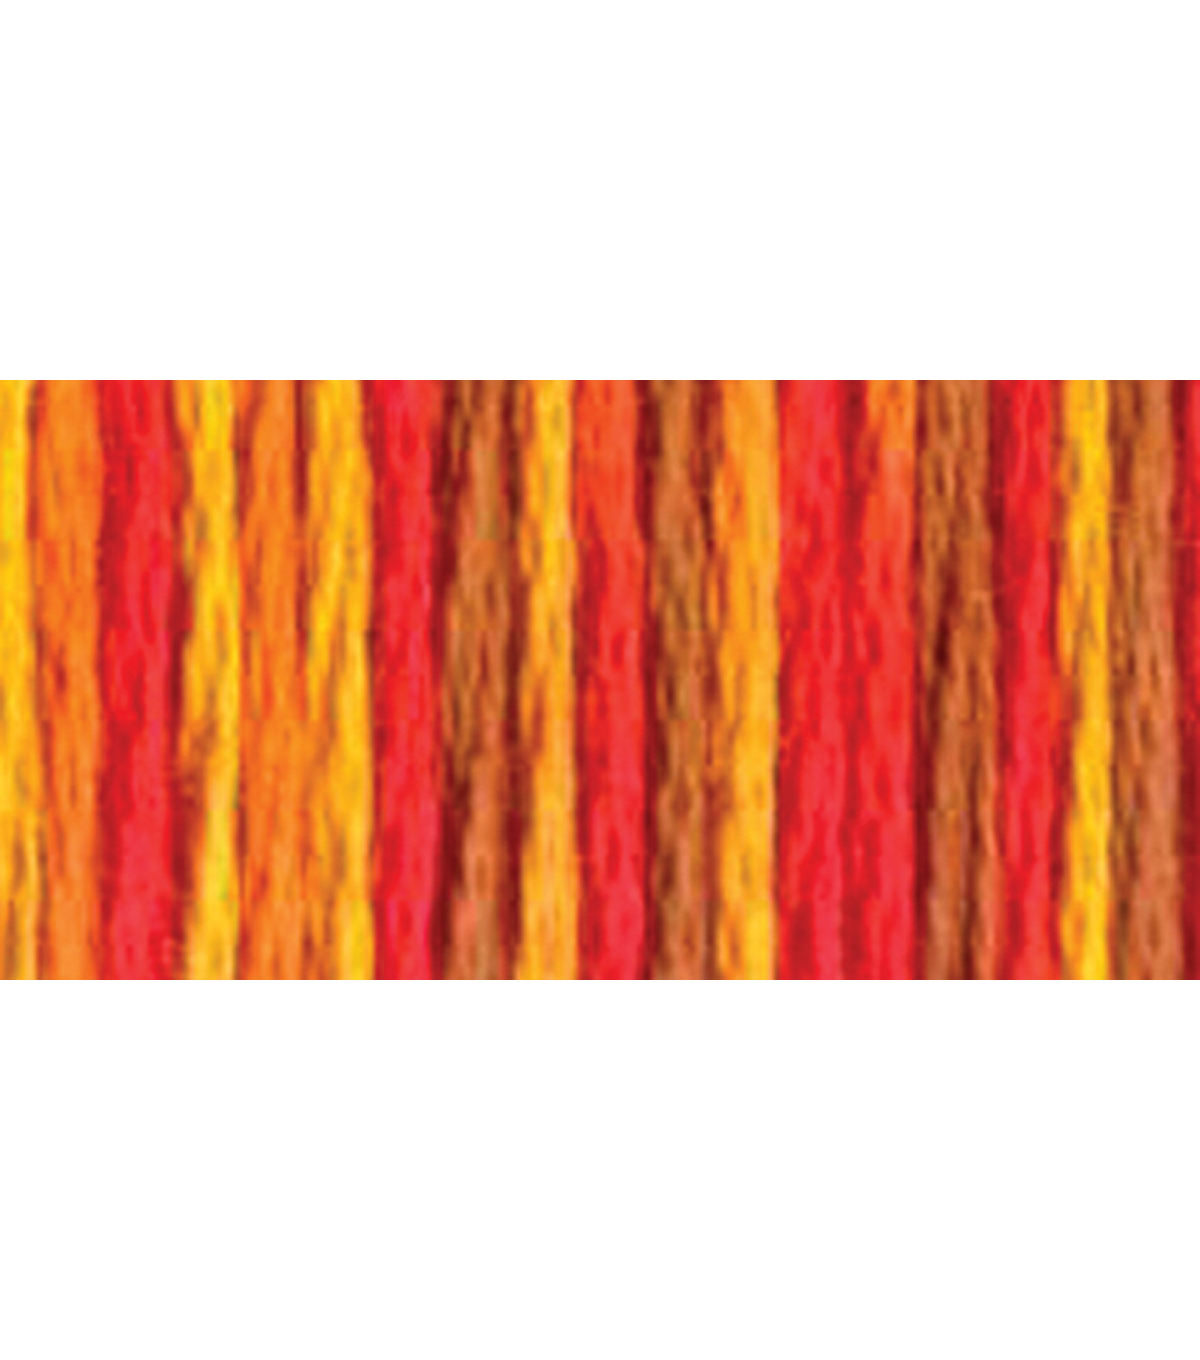 DMC Pearl Cotton Variation Thread 27 Yds Size 5, Fall Harvest